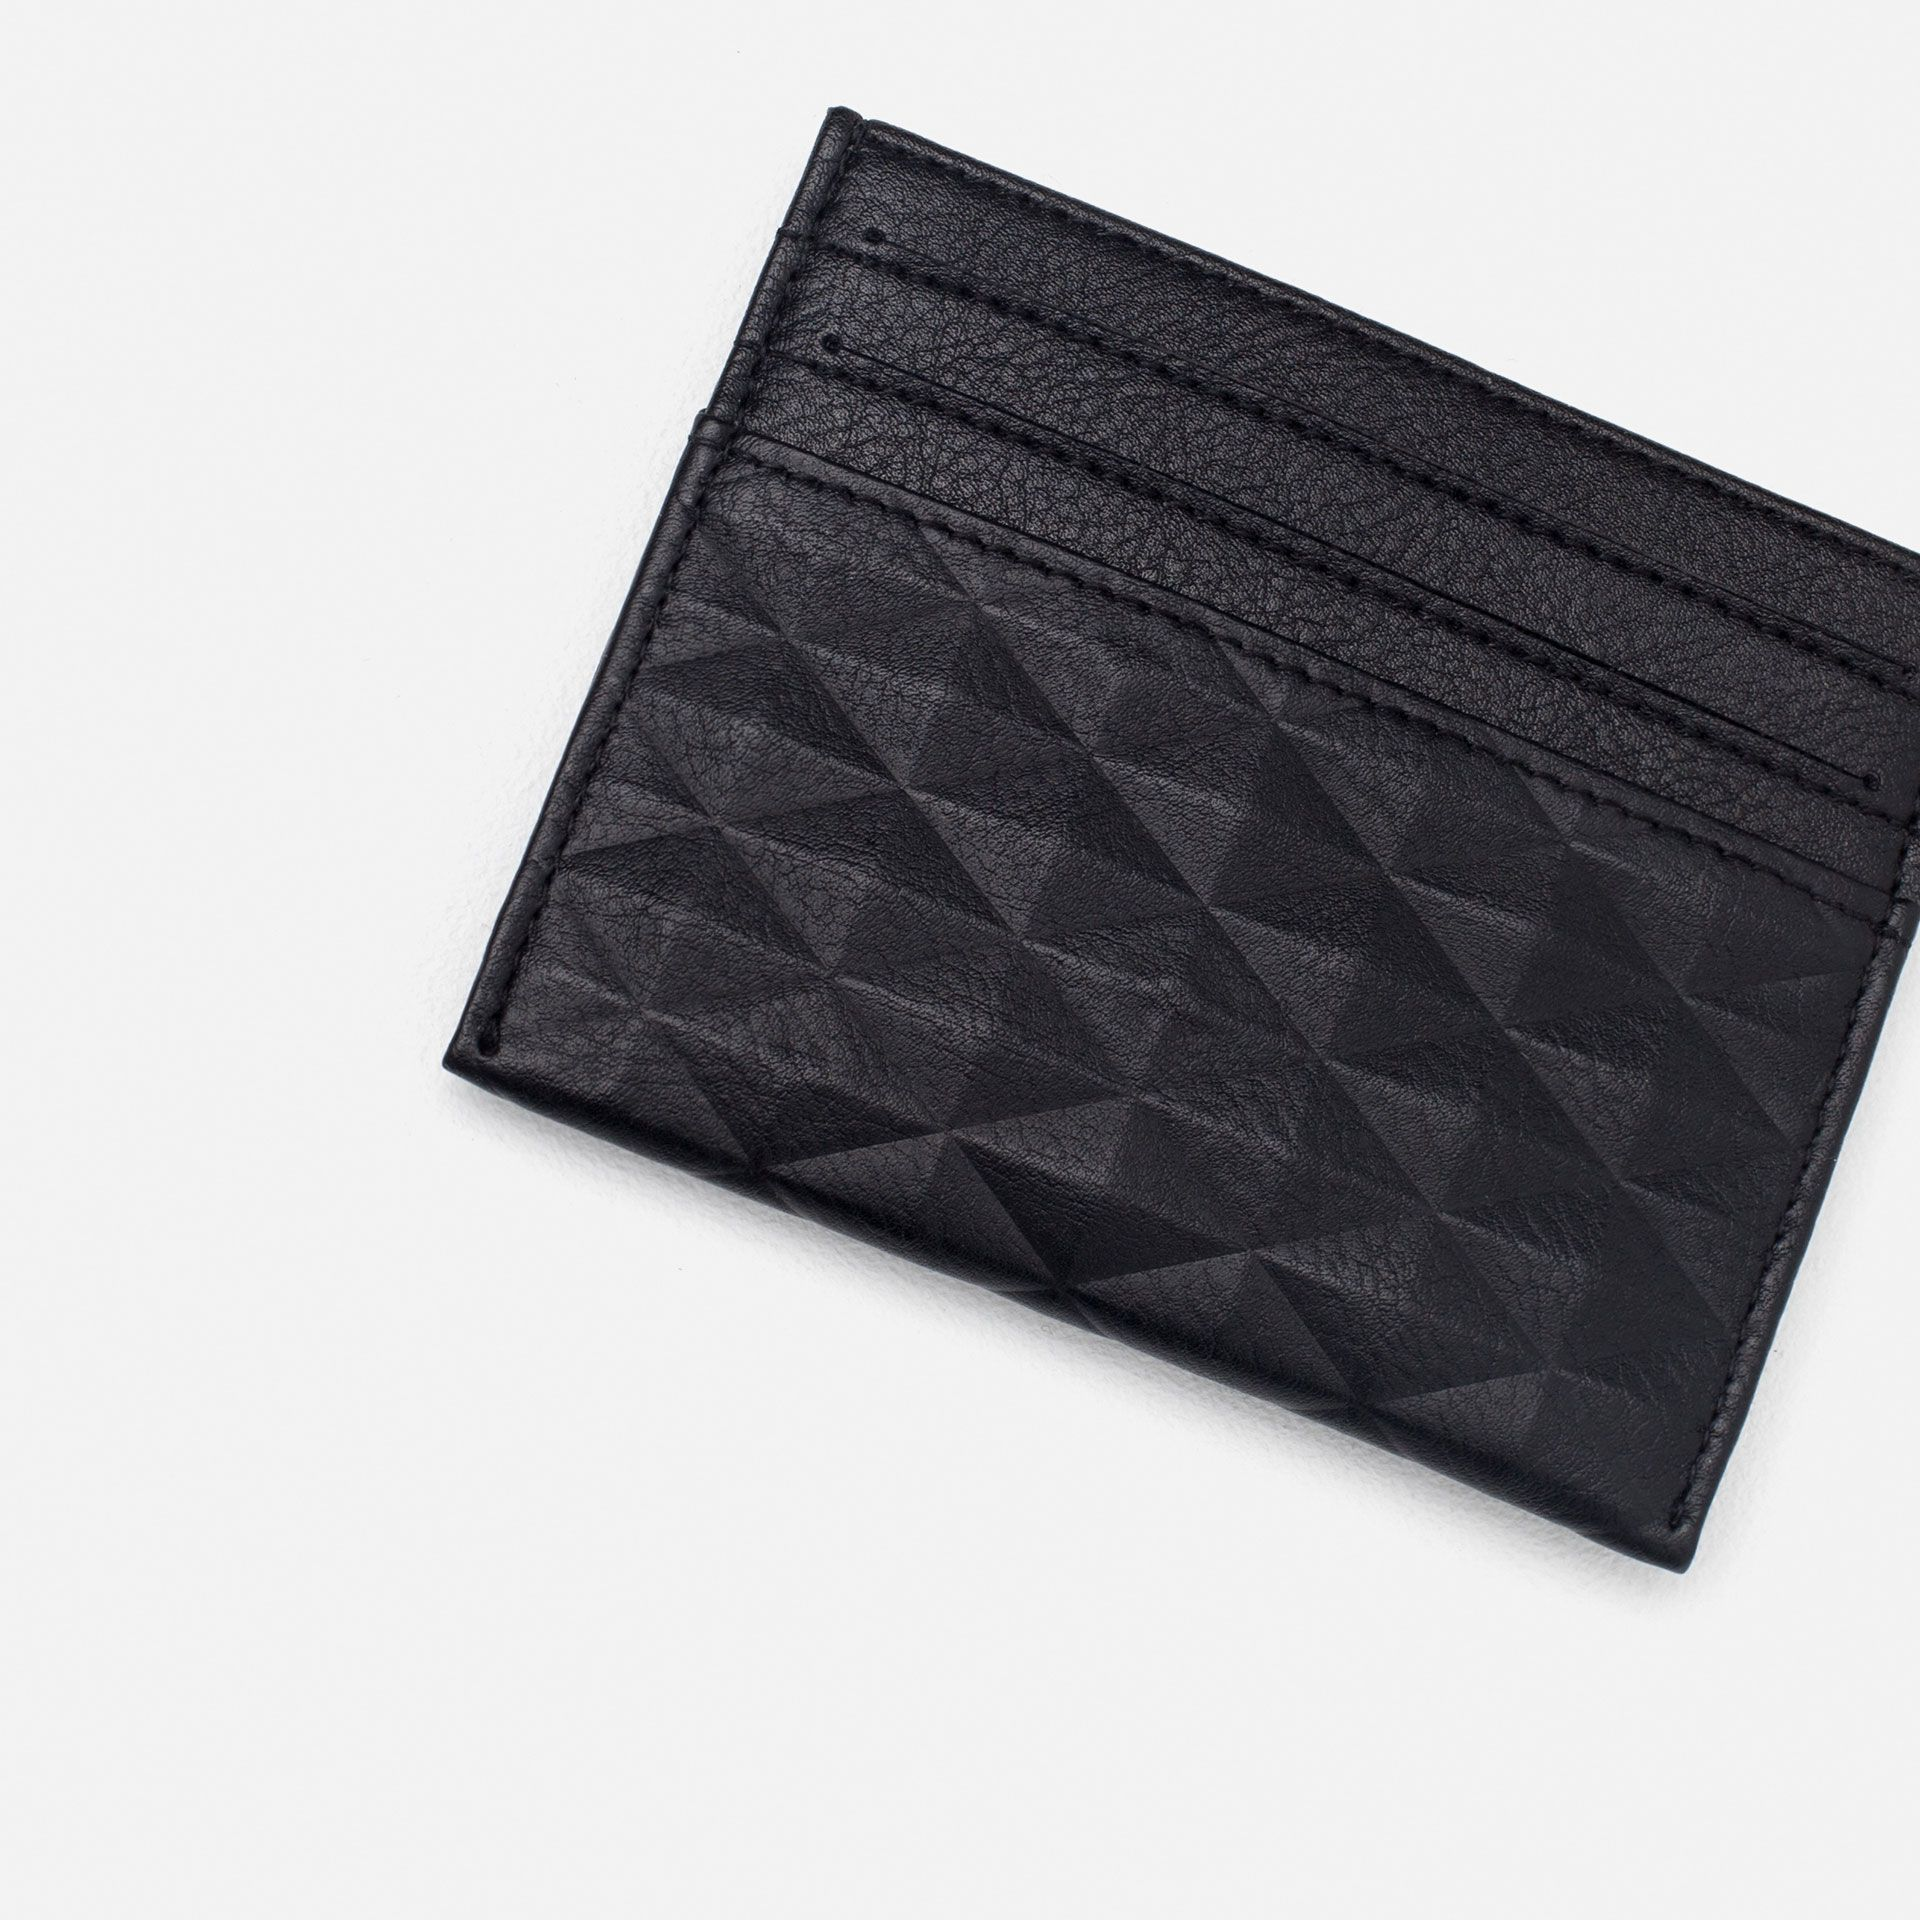 Quilted Business Card Holder View All Bags Man Business Card Holders Card Holder Wallet Men